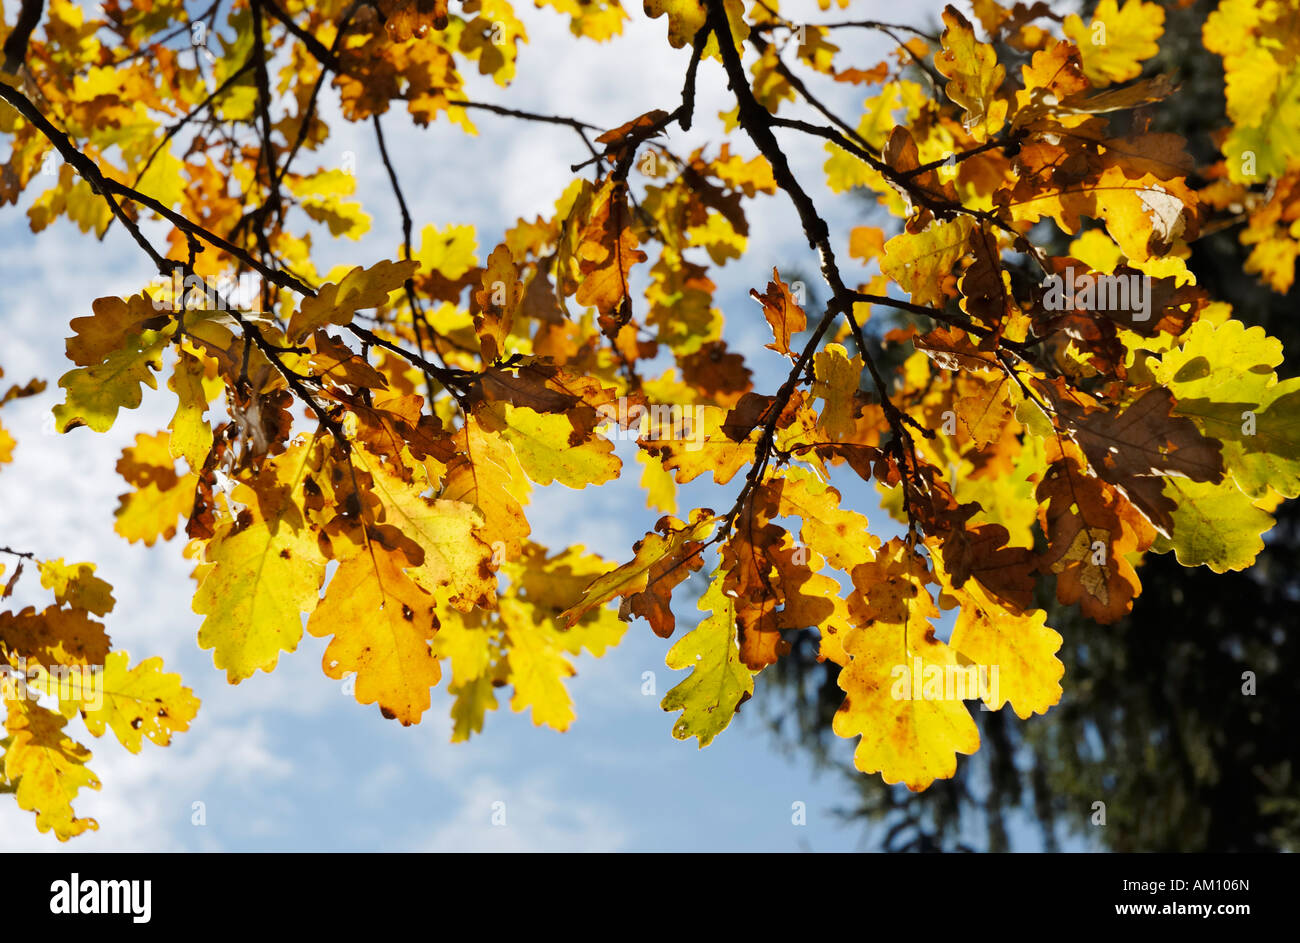 Autumnal coloured oak leaves, quercus robur fagaceae - Stock Image